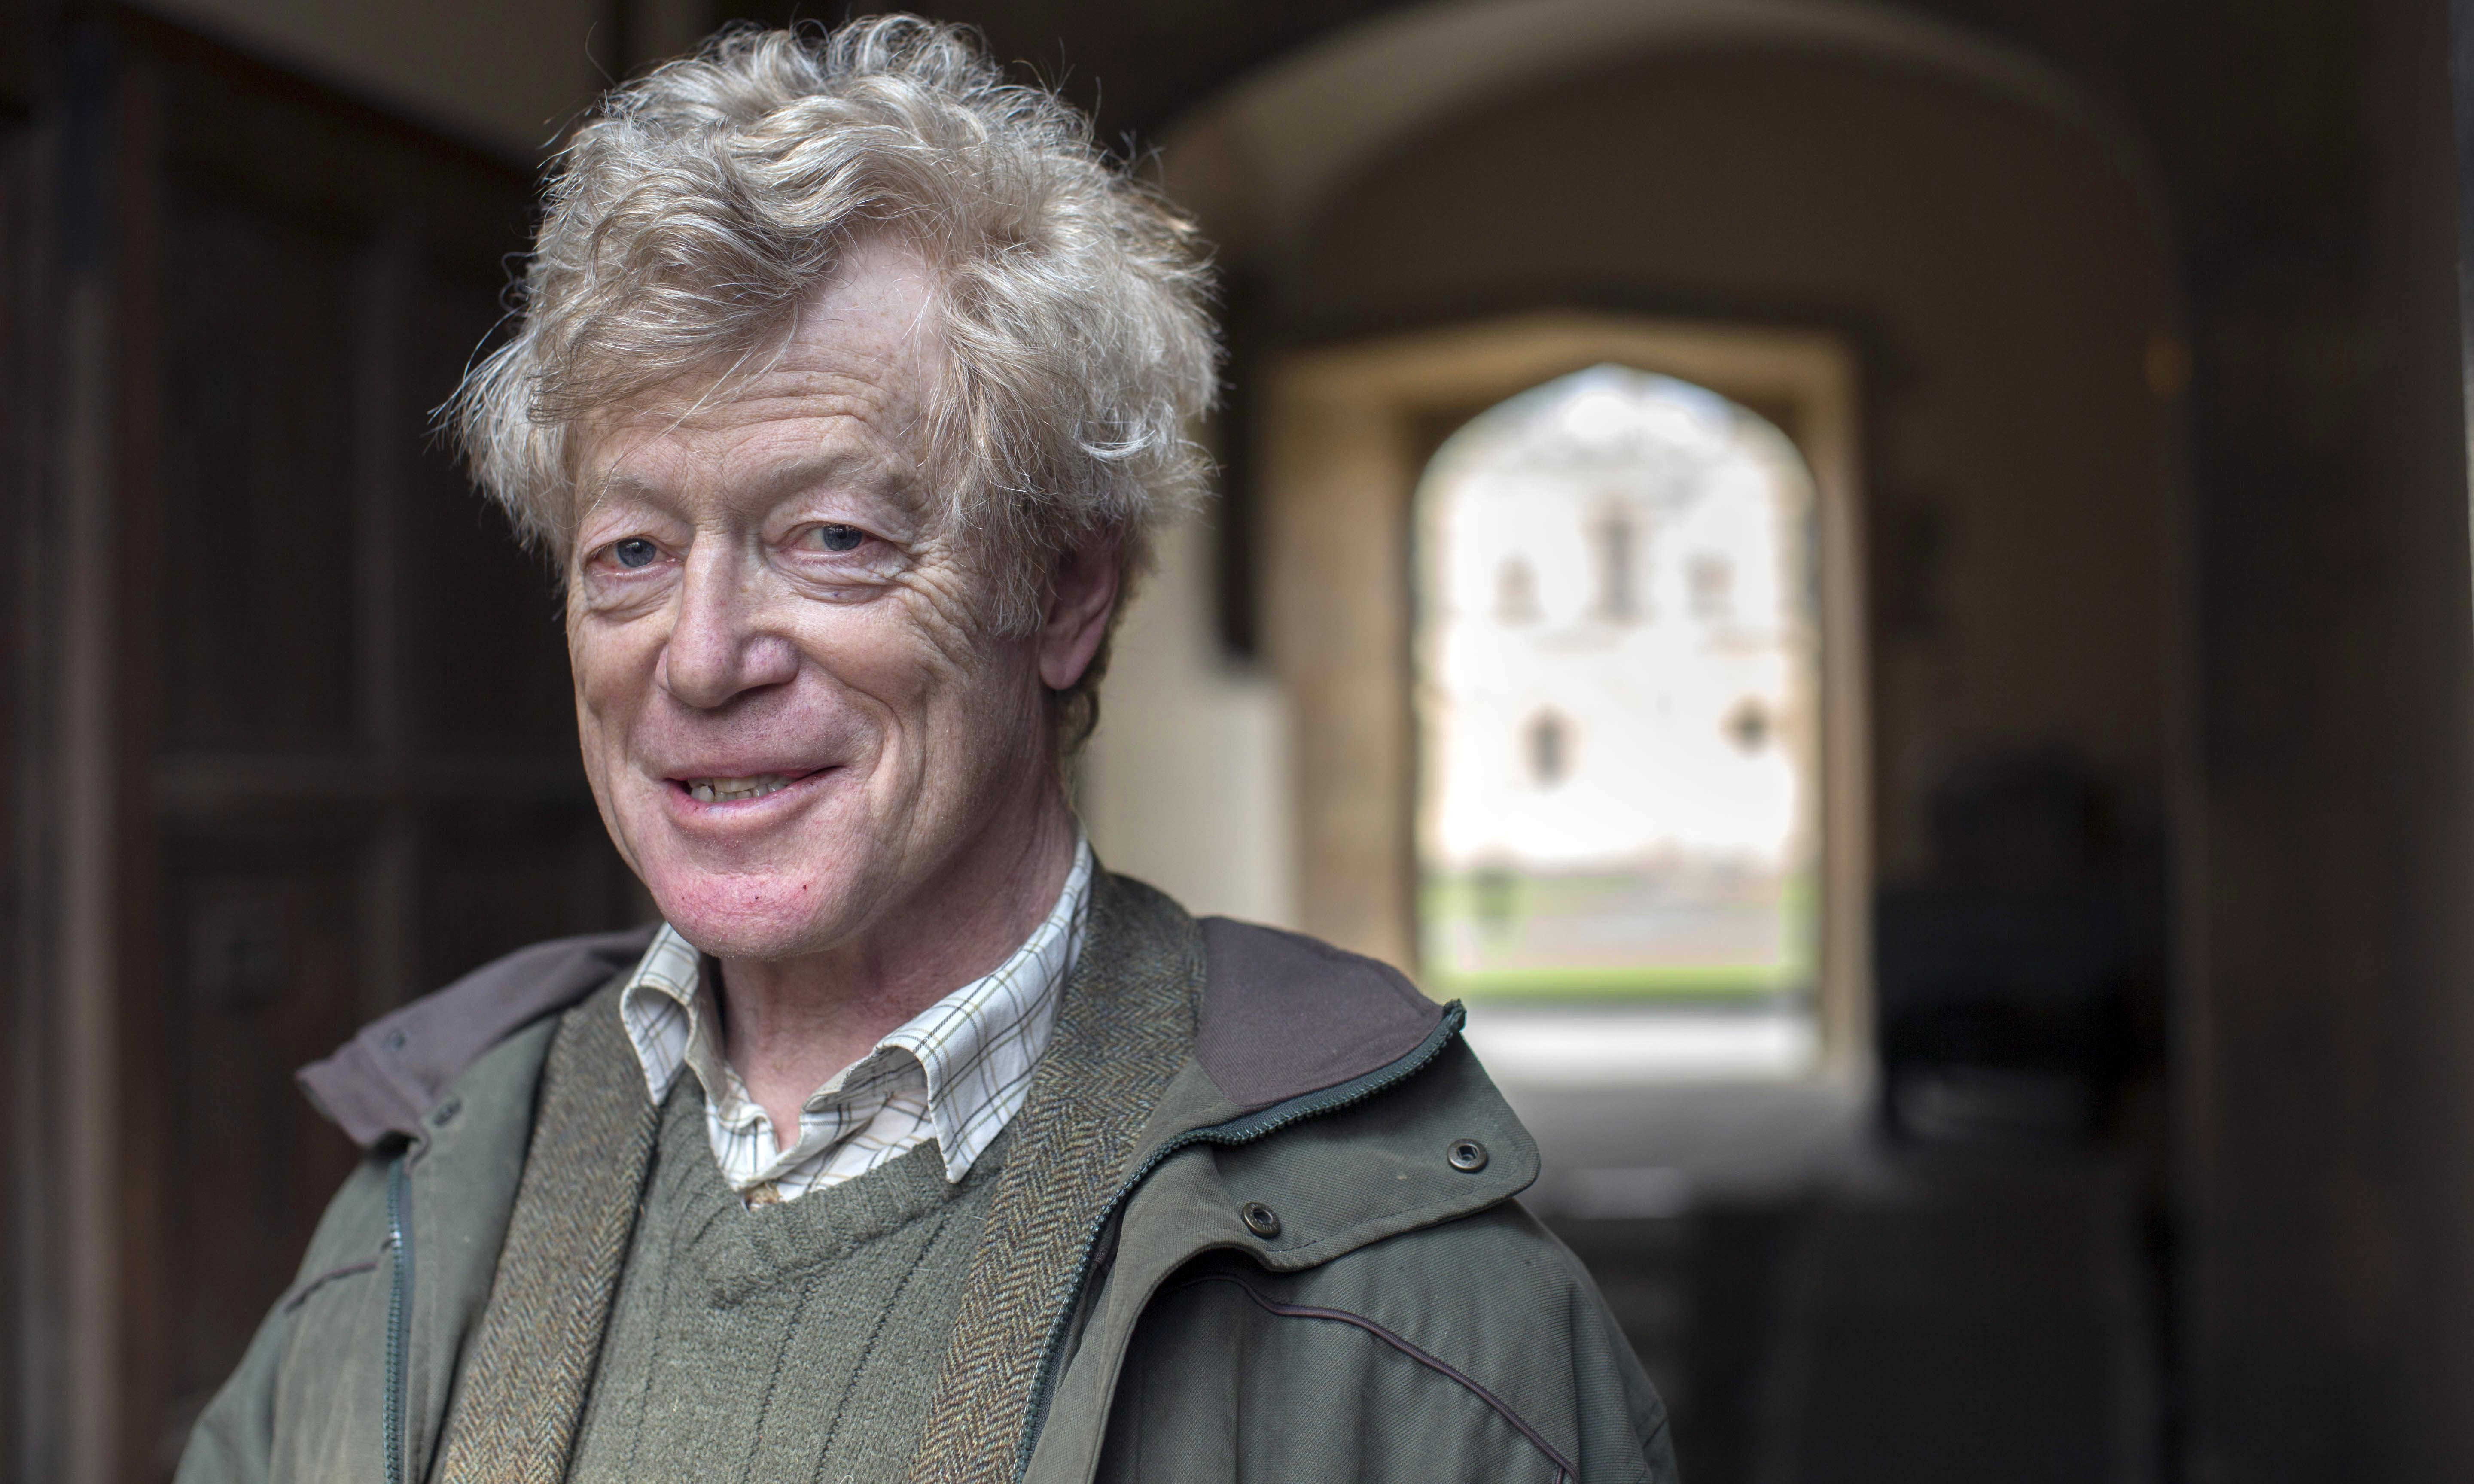 Roger Scruton's brand of conservatism became a licence for bigotry